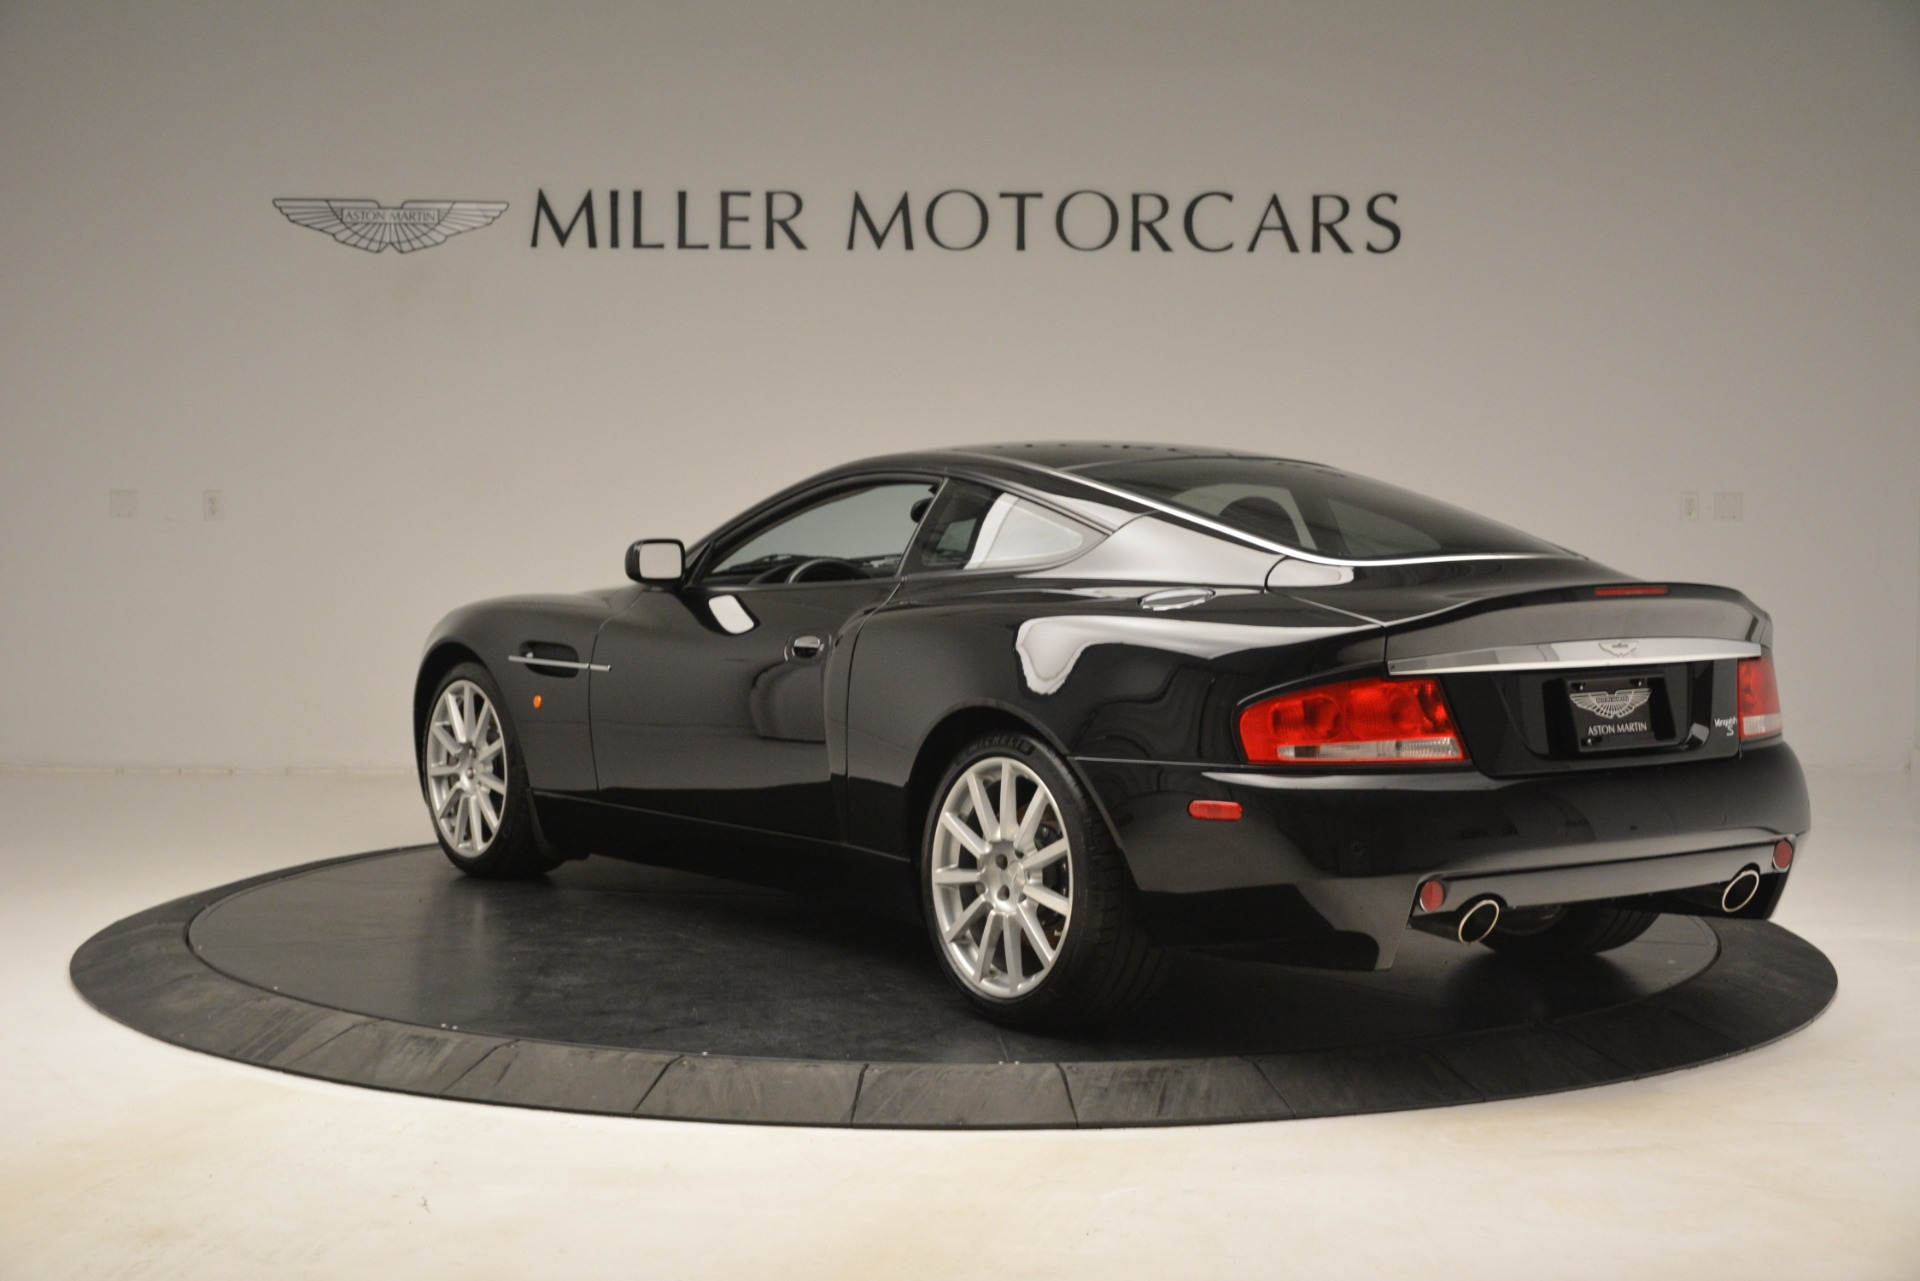 Used 2005 Aston Martin V12 Vanquish S Coupe For Sale In Greenwich, CT 3218_p5